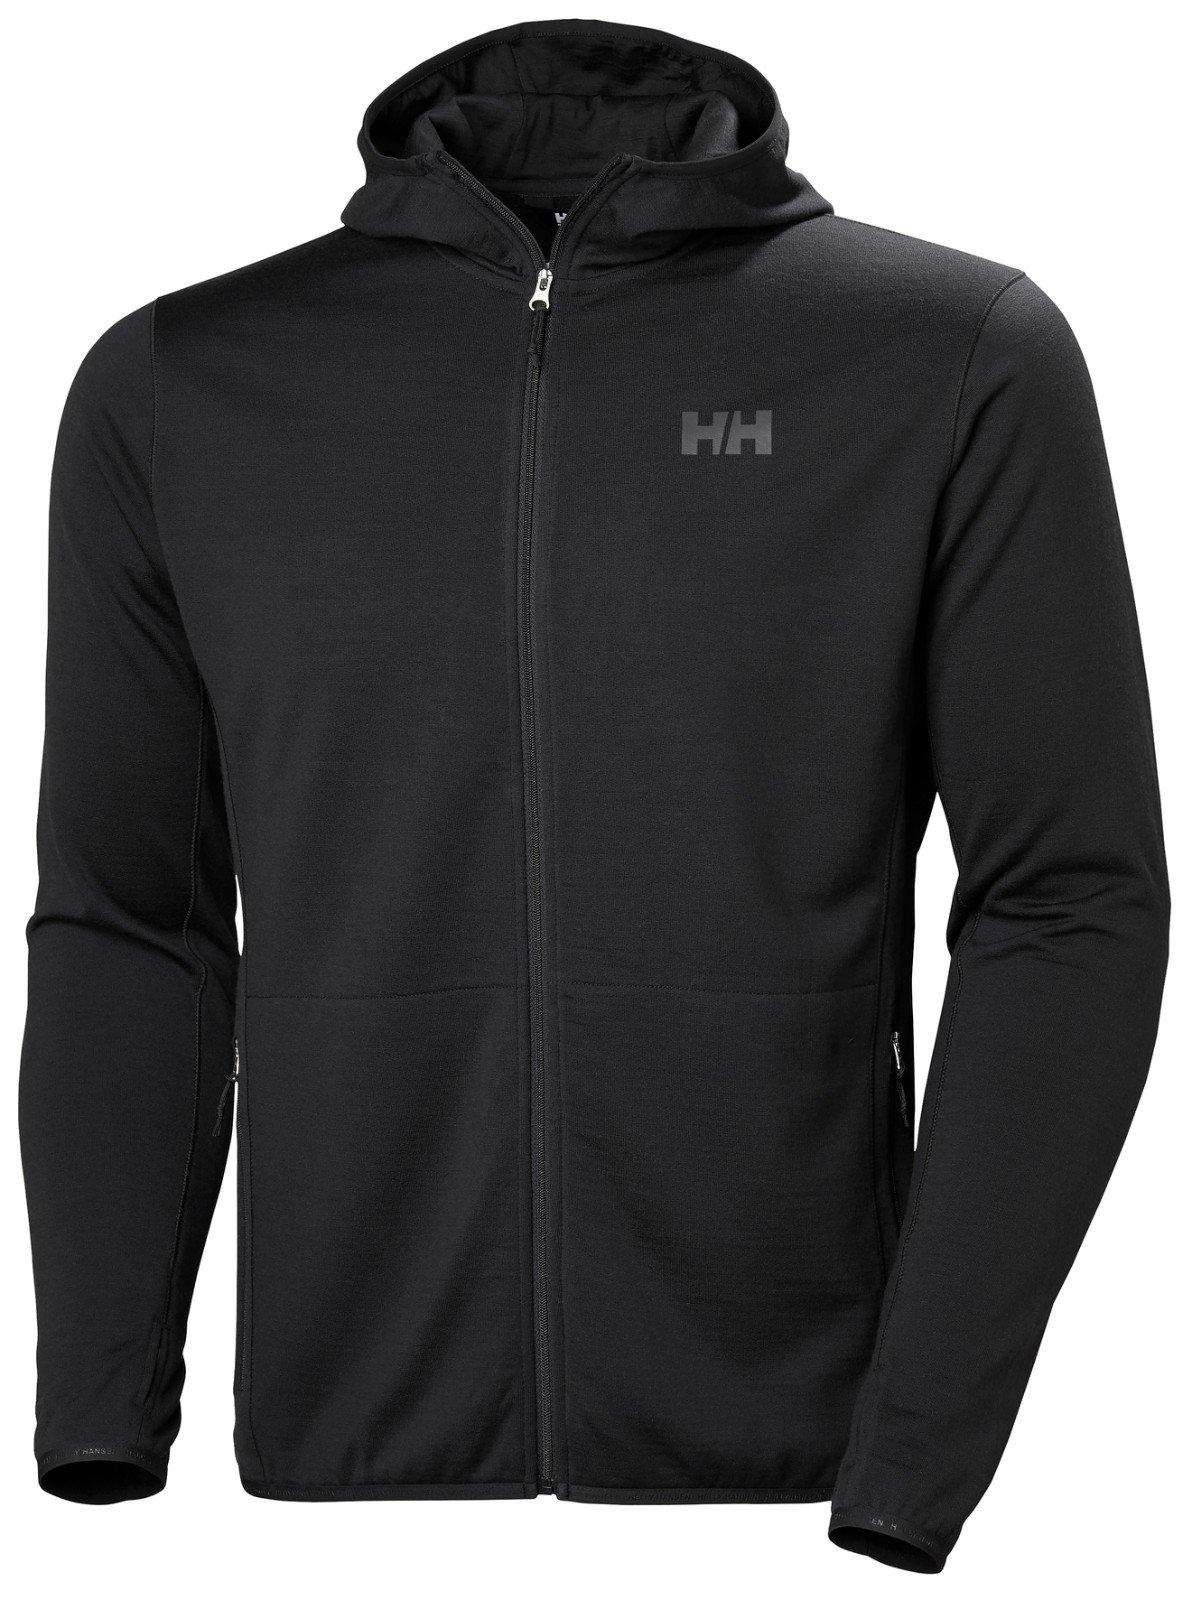 Helly Hansen Mens HH Merino Fleece Hooded Jacket - Ebony, S by Helly Hensen (Image #1)